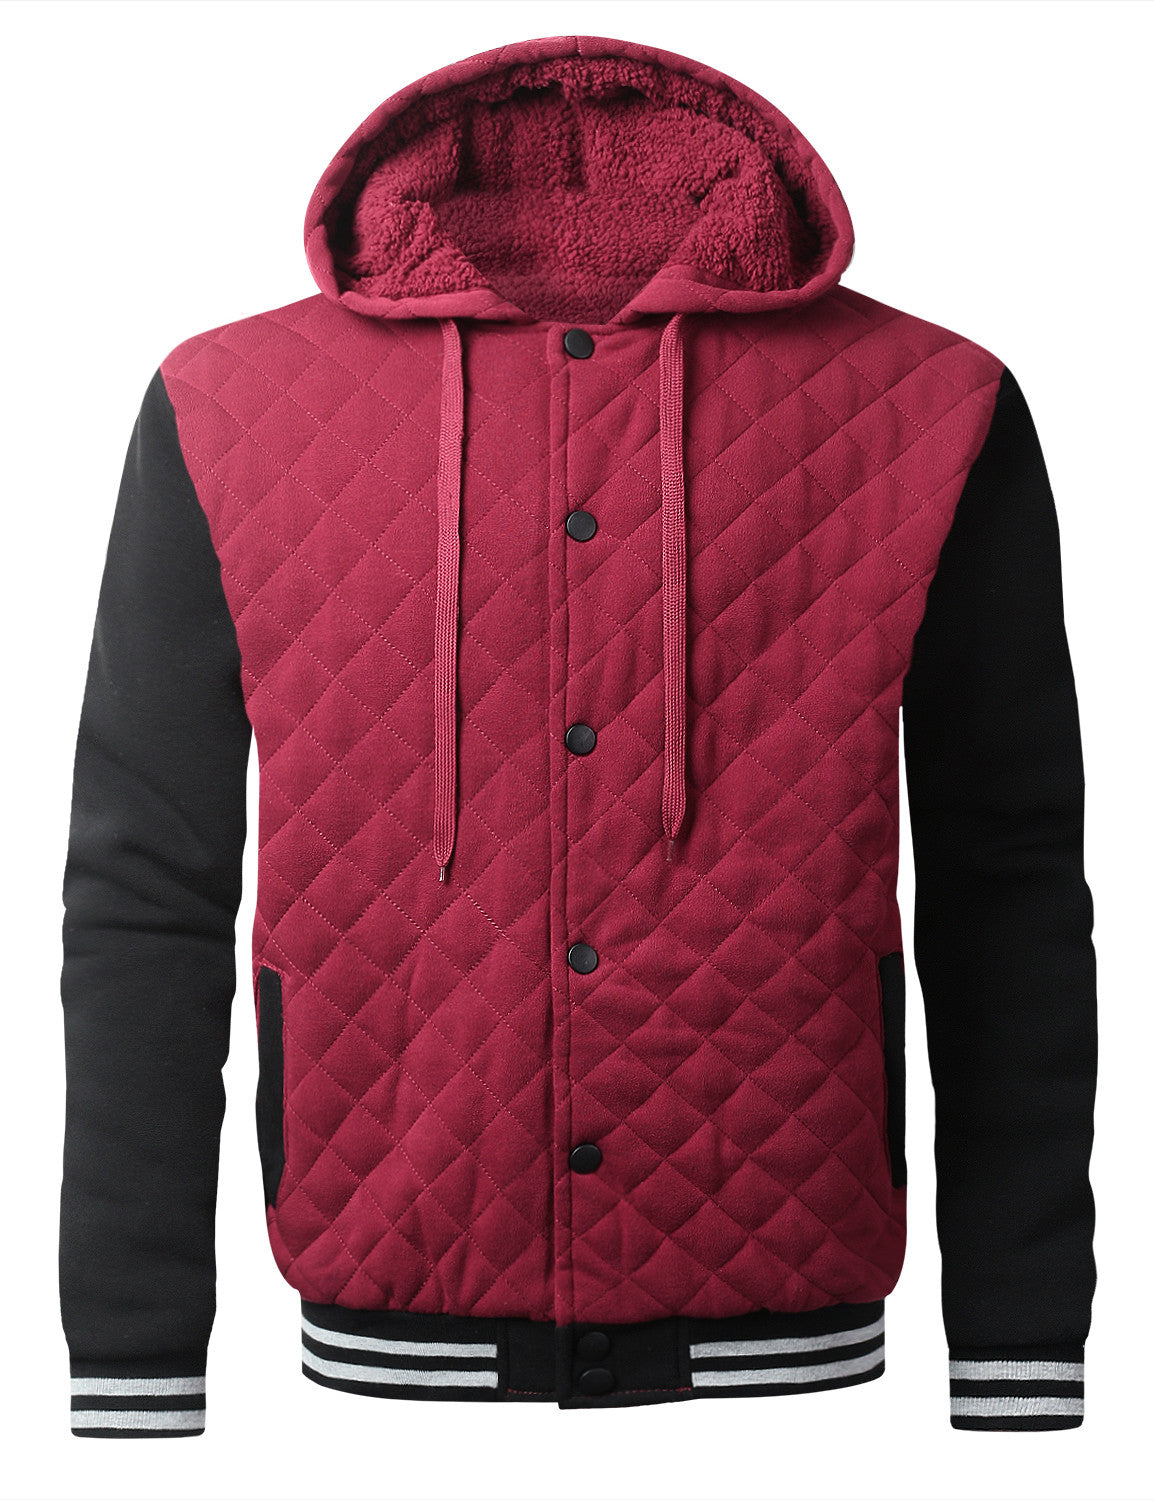 WINEBLACK Quilted Baseball Hoodie Jacket - URBANCREWS